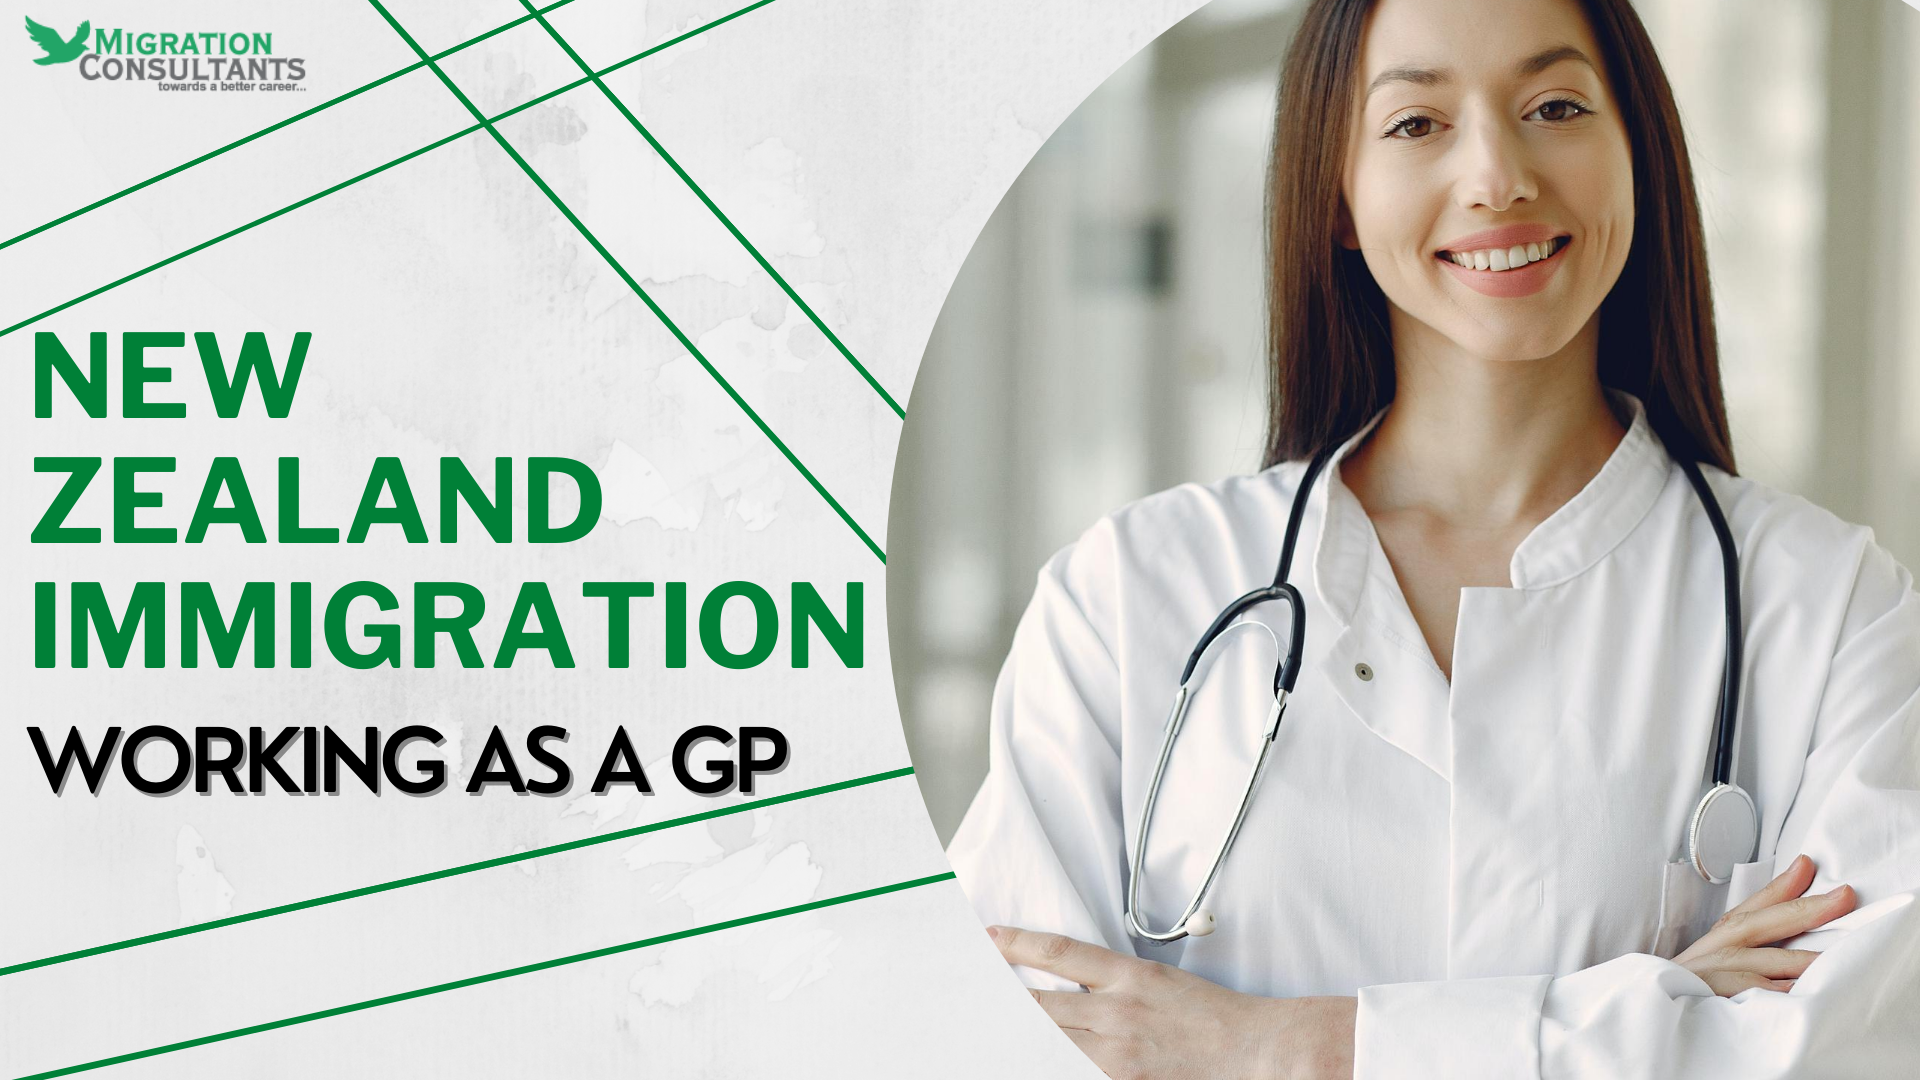 New Zealand immigration: Working as a GP